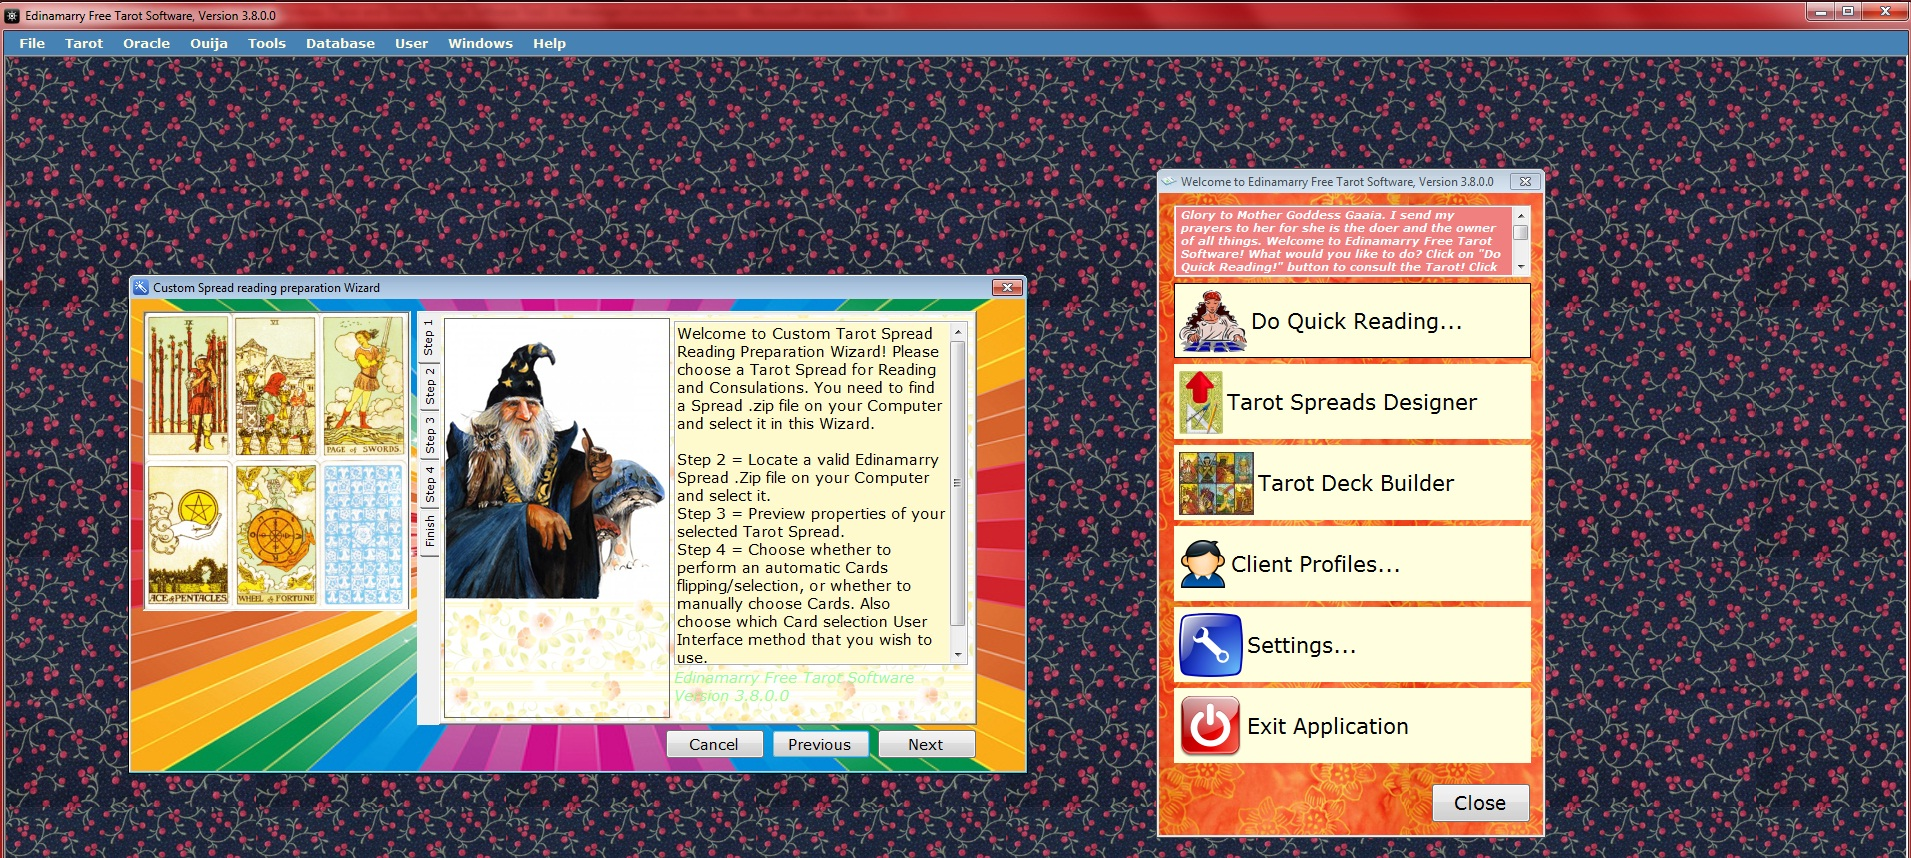 Edinamarry Free Tarot Software Screenshot